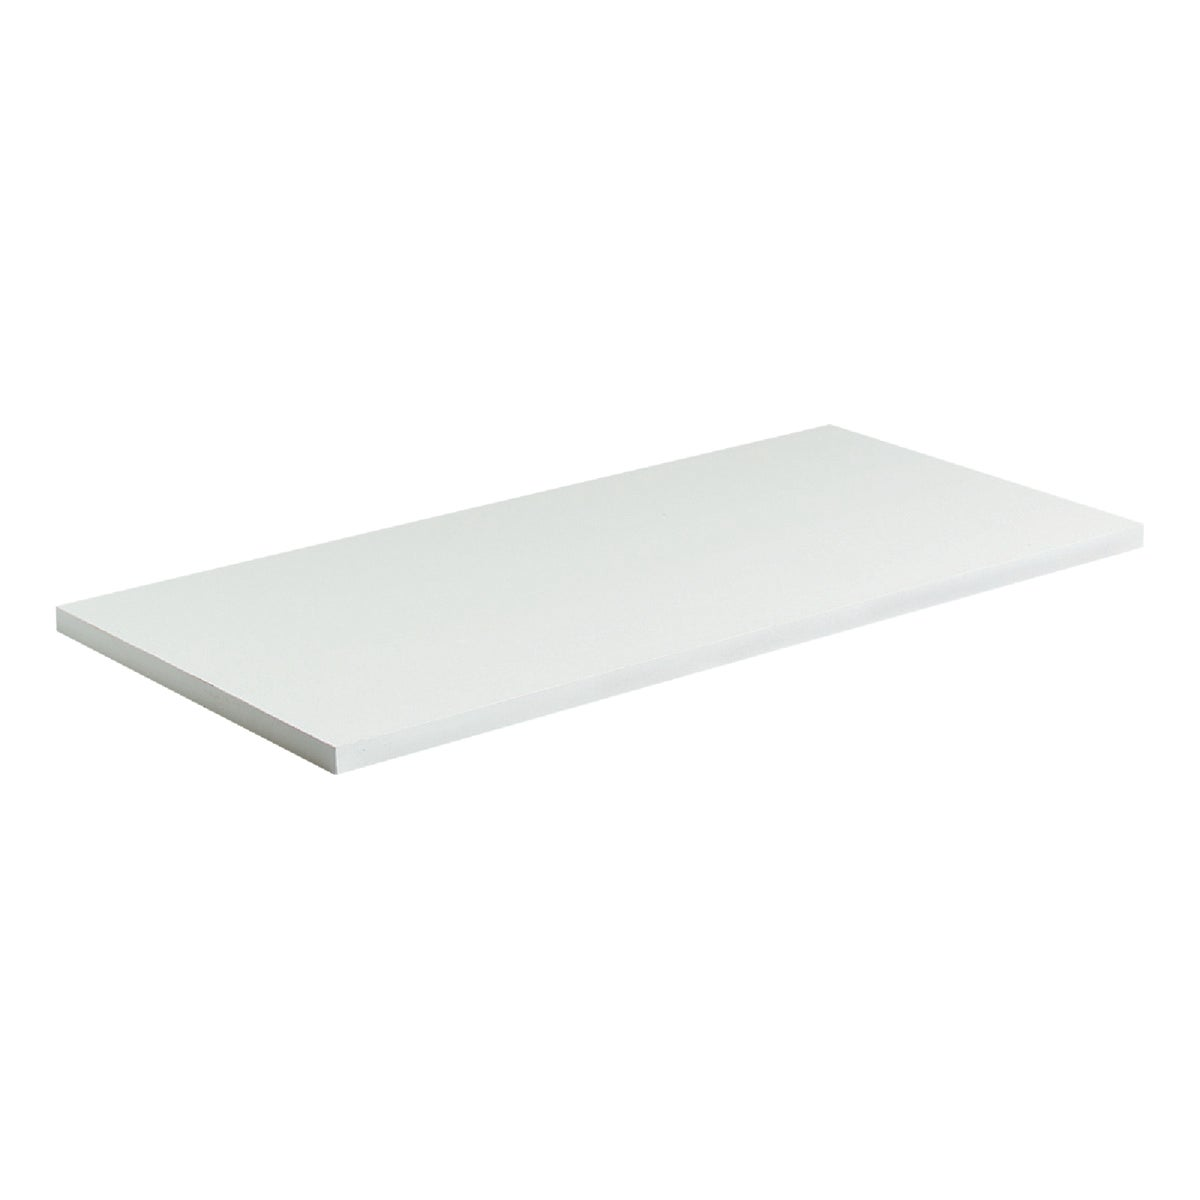 12X24 WHITE SHELF - 1980WH by Knape & Vogt Mfg Co